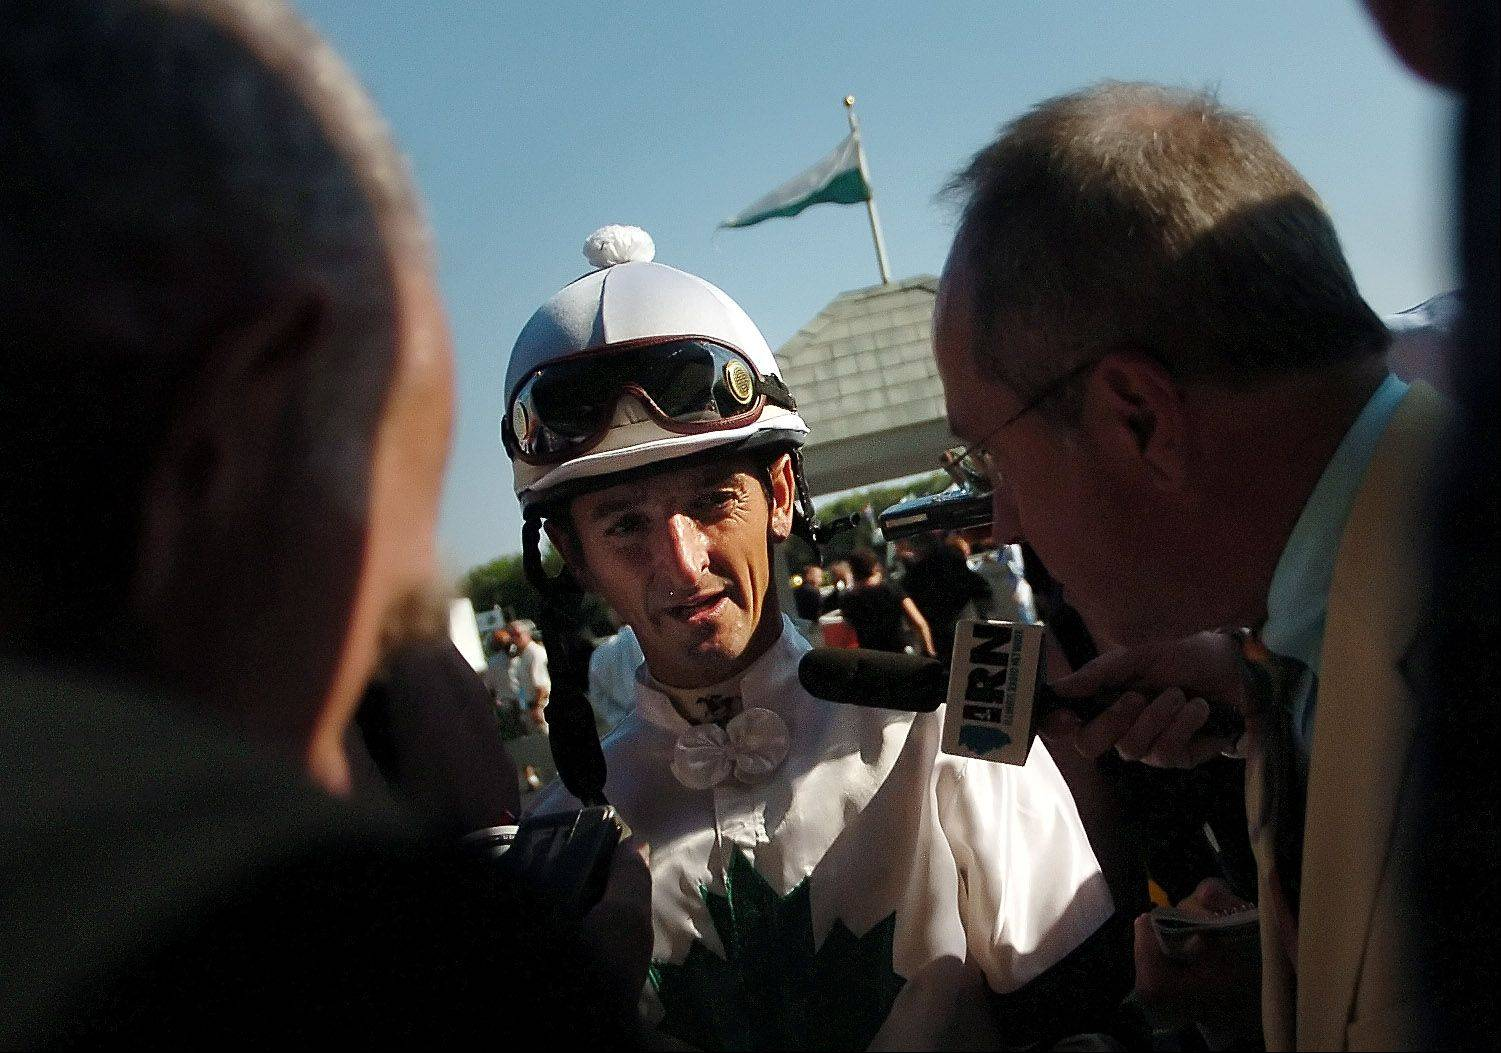 Robby Albarado is targeted by reporters after winning the Arlington Million.